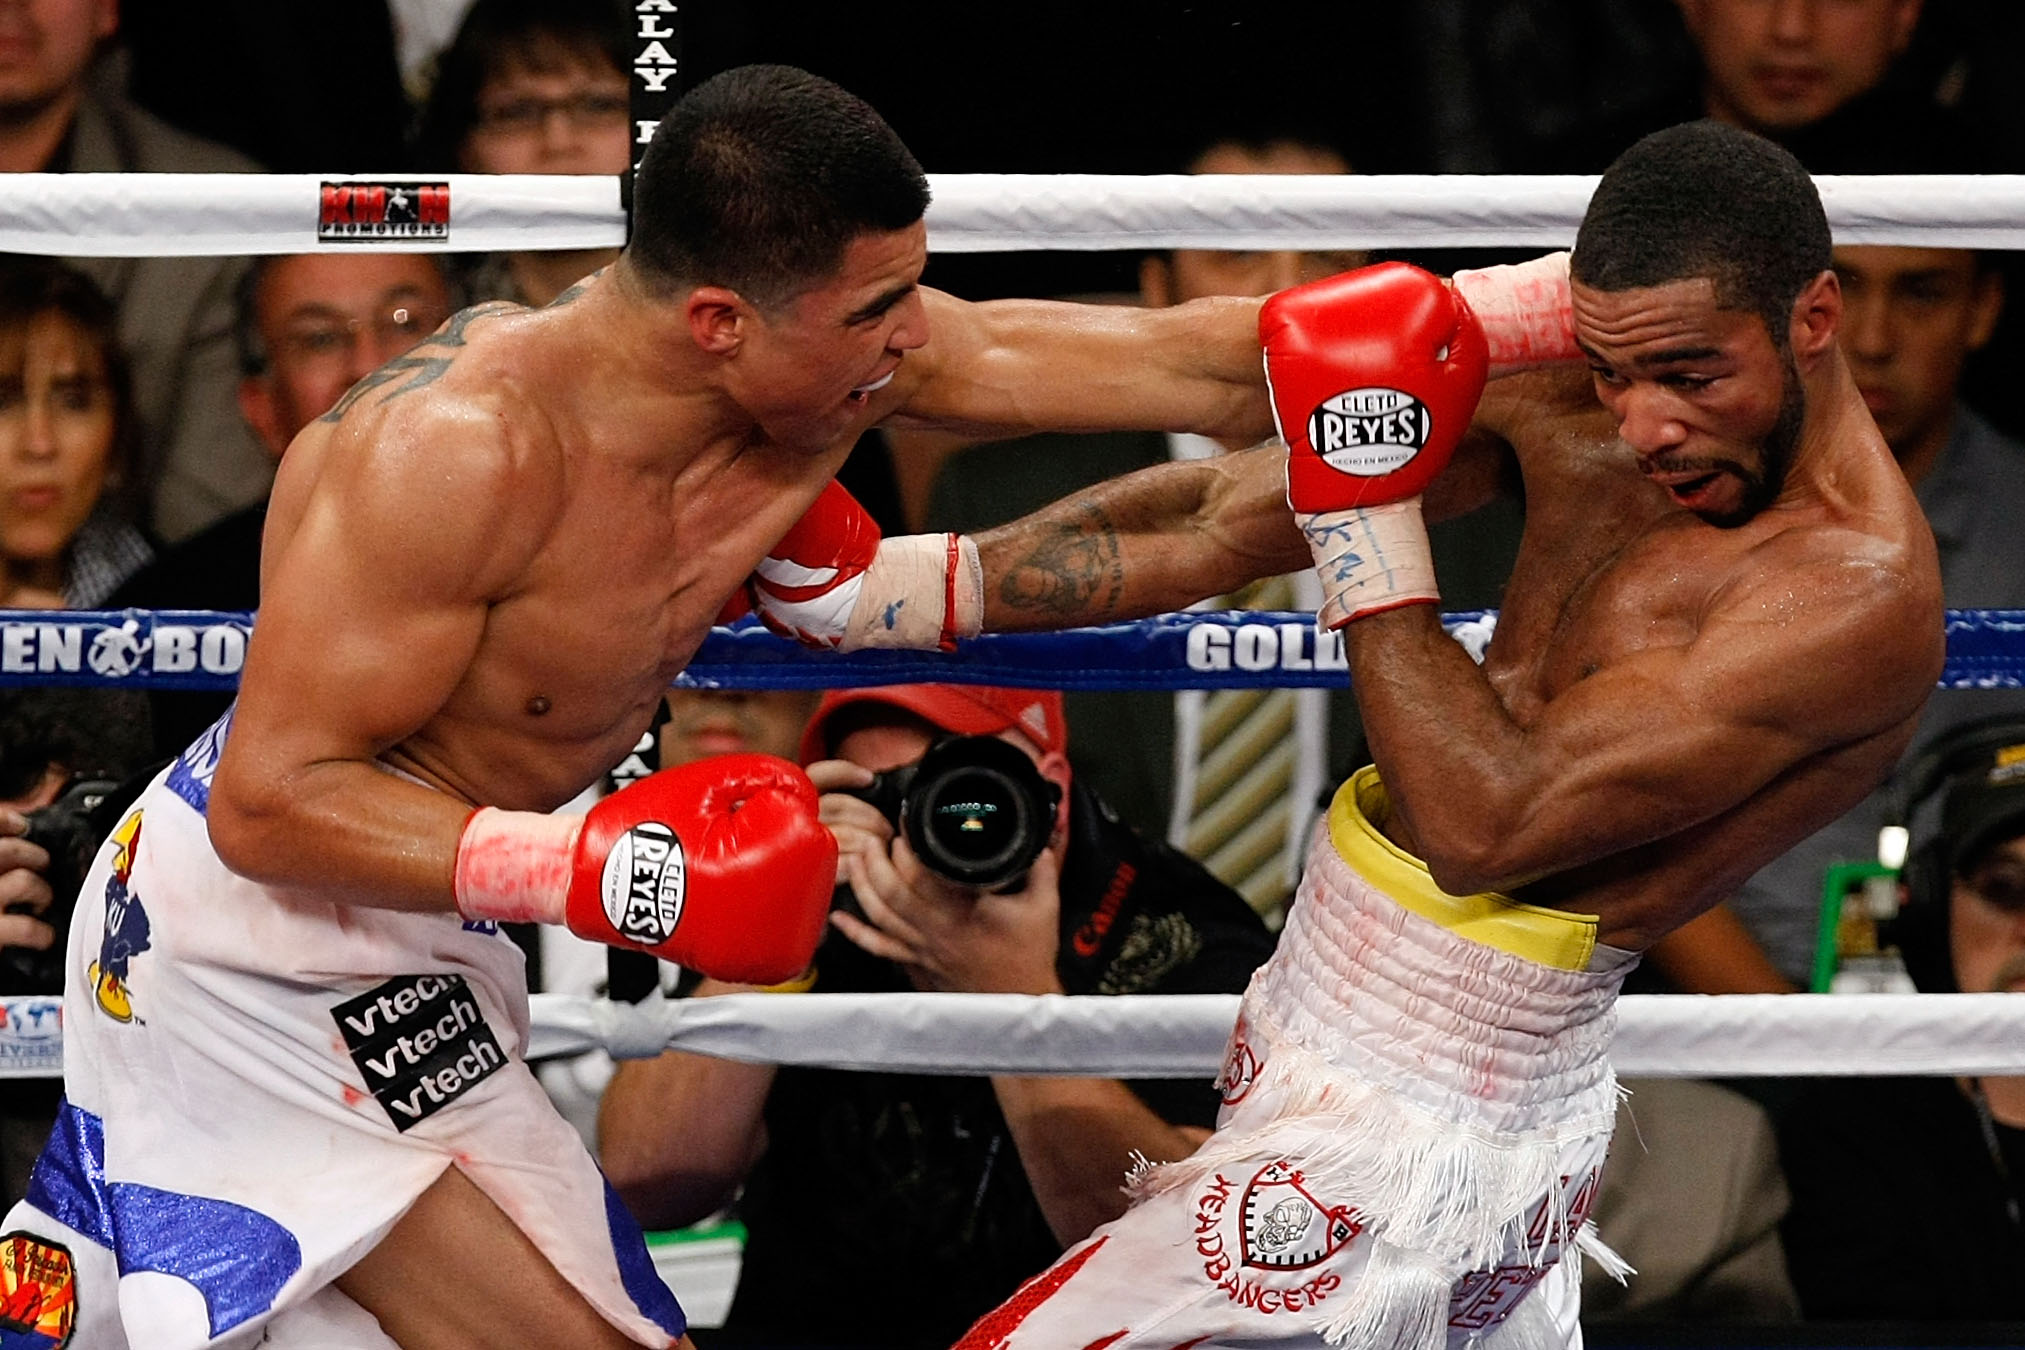 LAS VEGAS - DECEMBER 11:  (L-R) Victor Ortiz and Lamont Petersen exchange blows during the super lightweight fight at Mandalay Bay Events Center on December 11, 2010 in Las Vegas, Nevada.  (Photo by Ethan Miller/Getty Images)